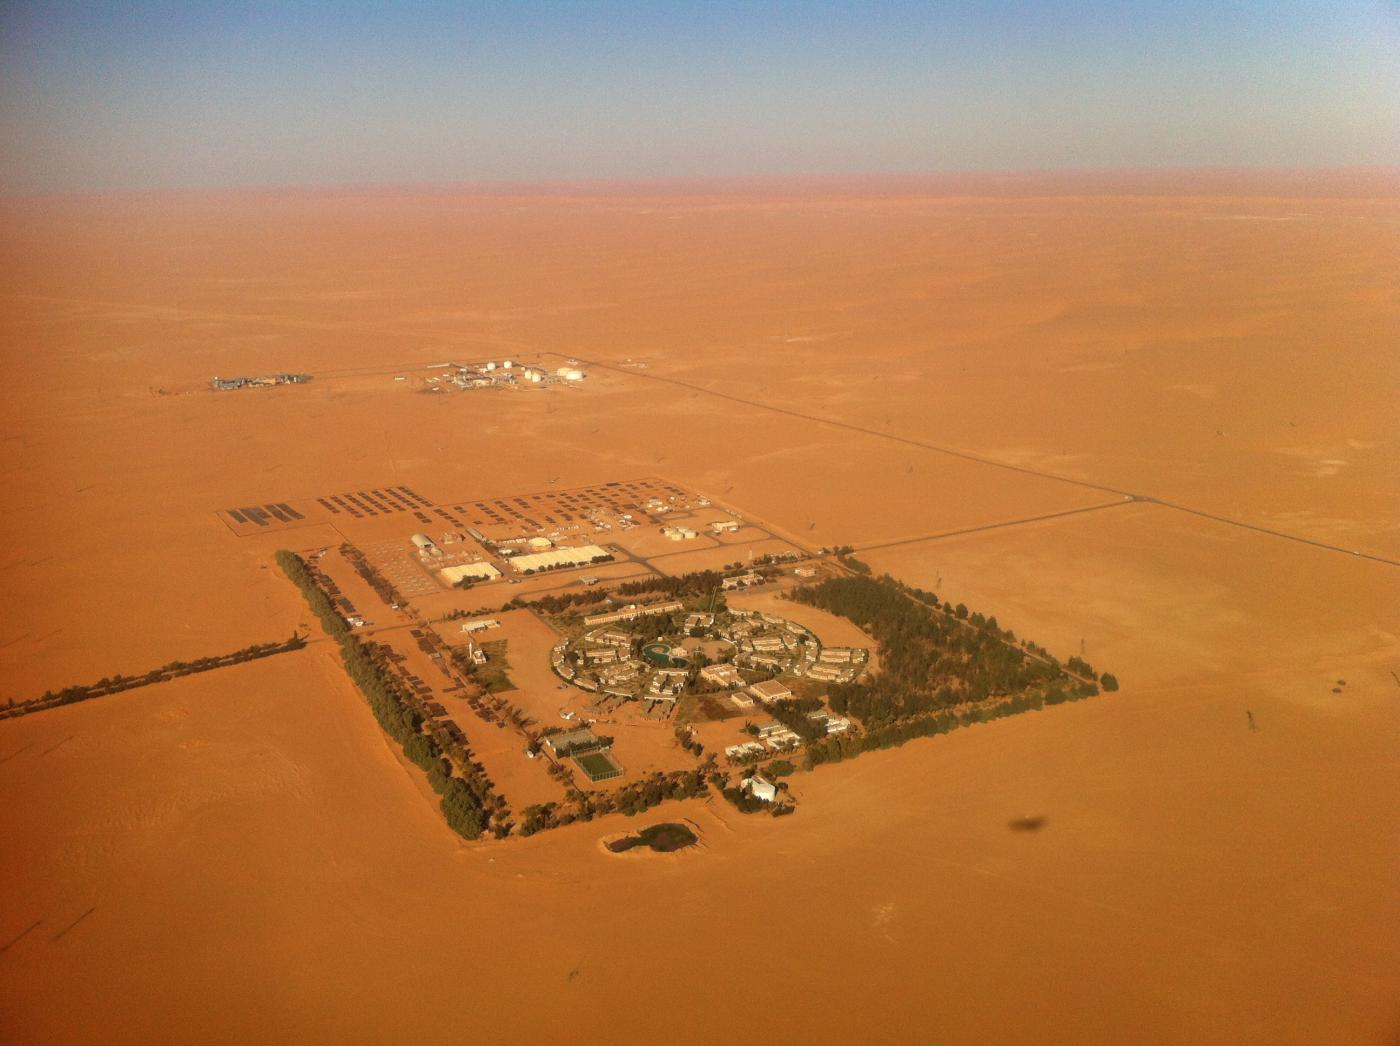 The Sharara oil field in southern Libya